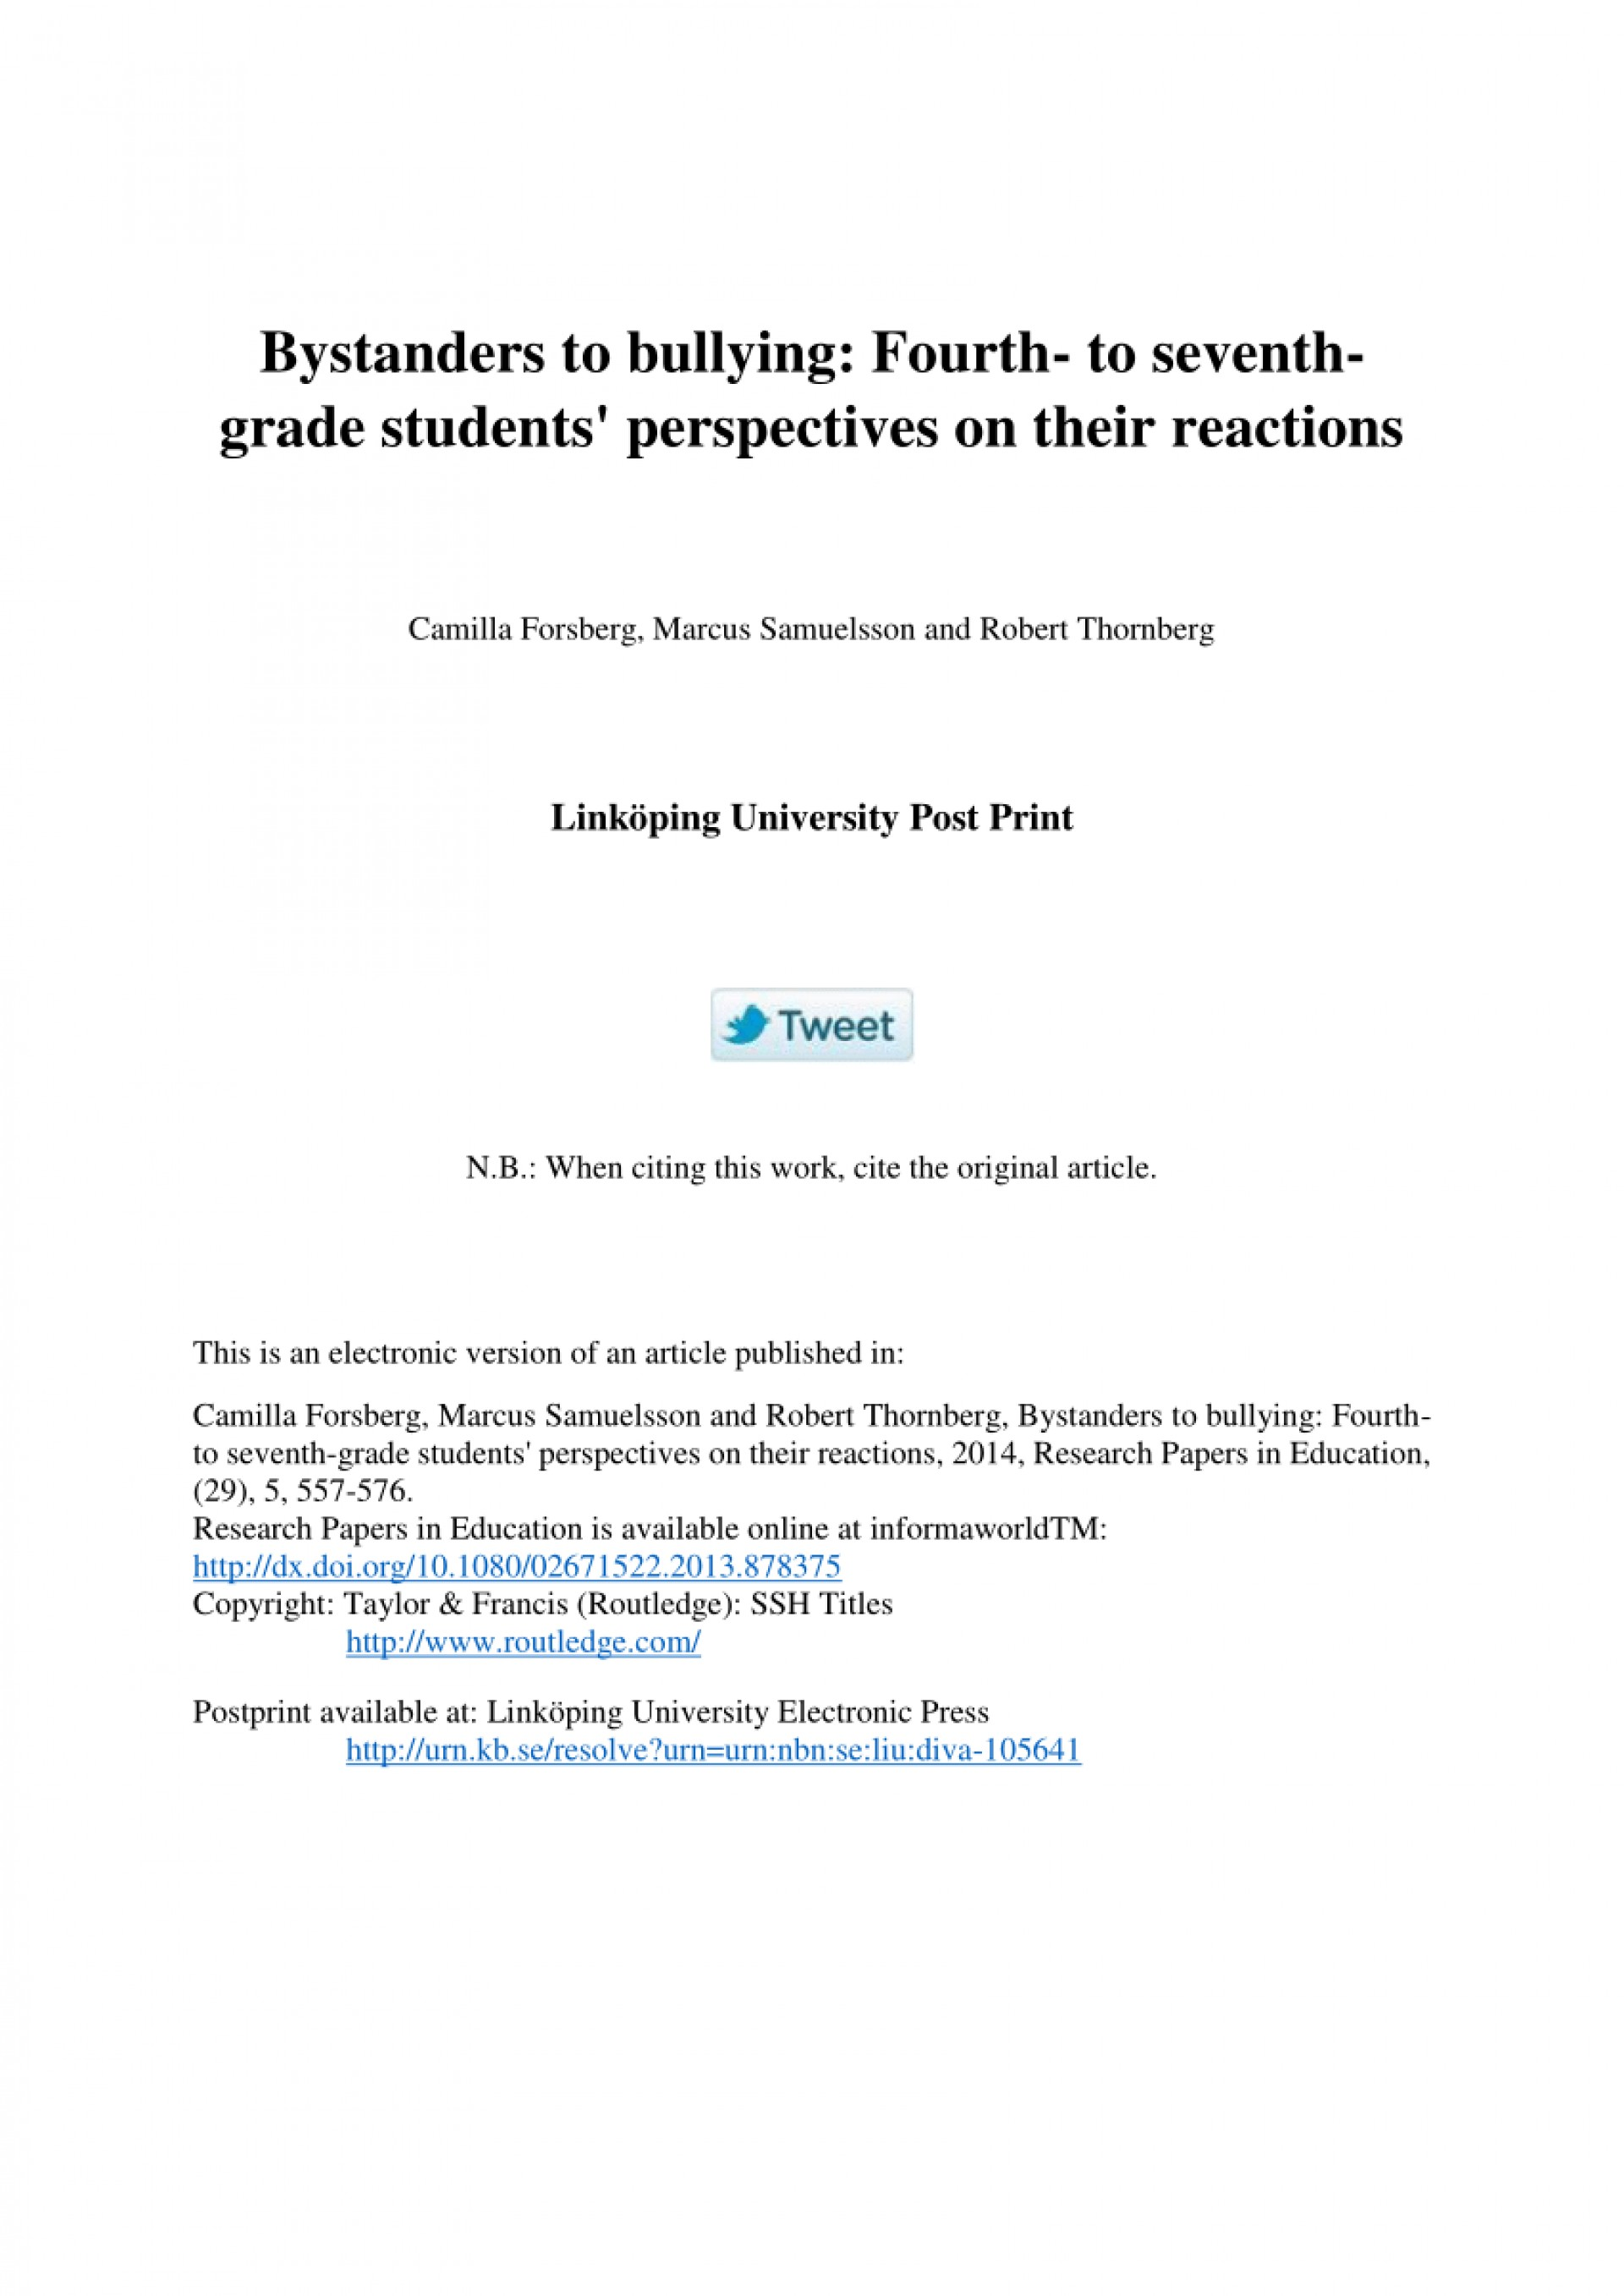 003 Research Paper Bullying Papers Formidable Anti Titles For Cyberbullying Tagalog 1920